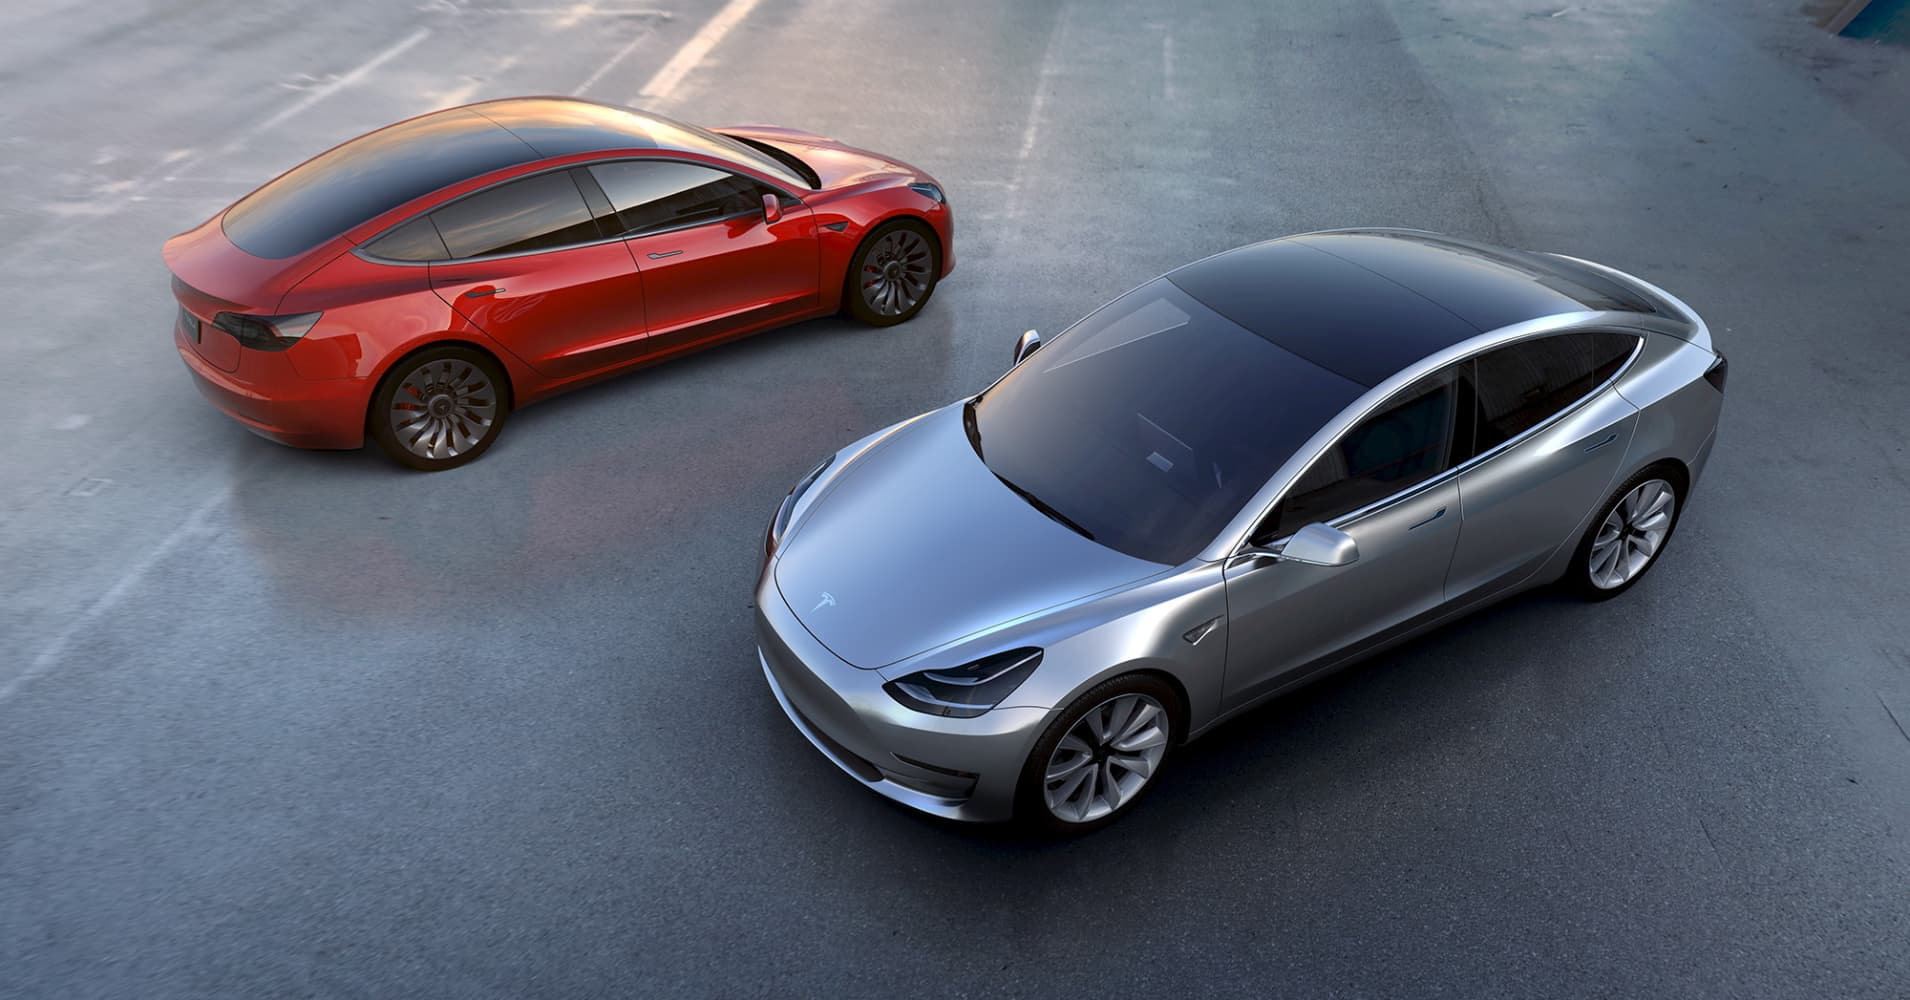 Tesla Model 3 could be 10 times safer than the average car, says analyst